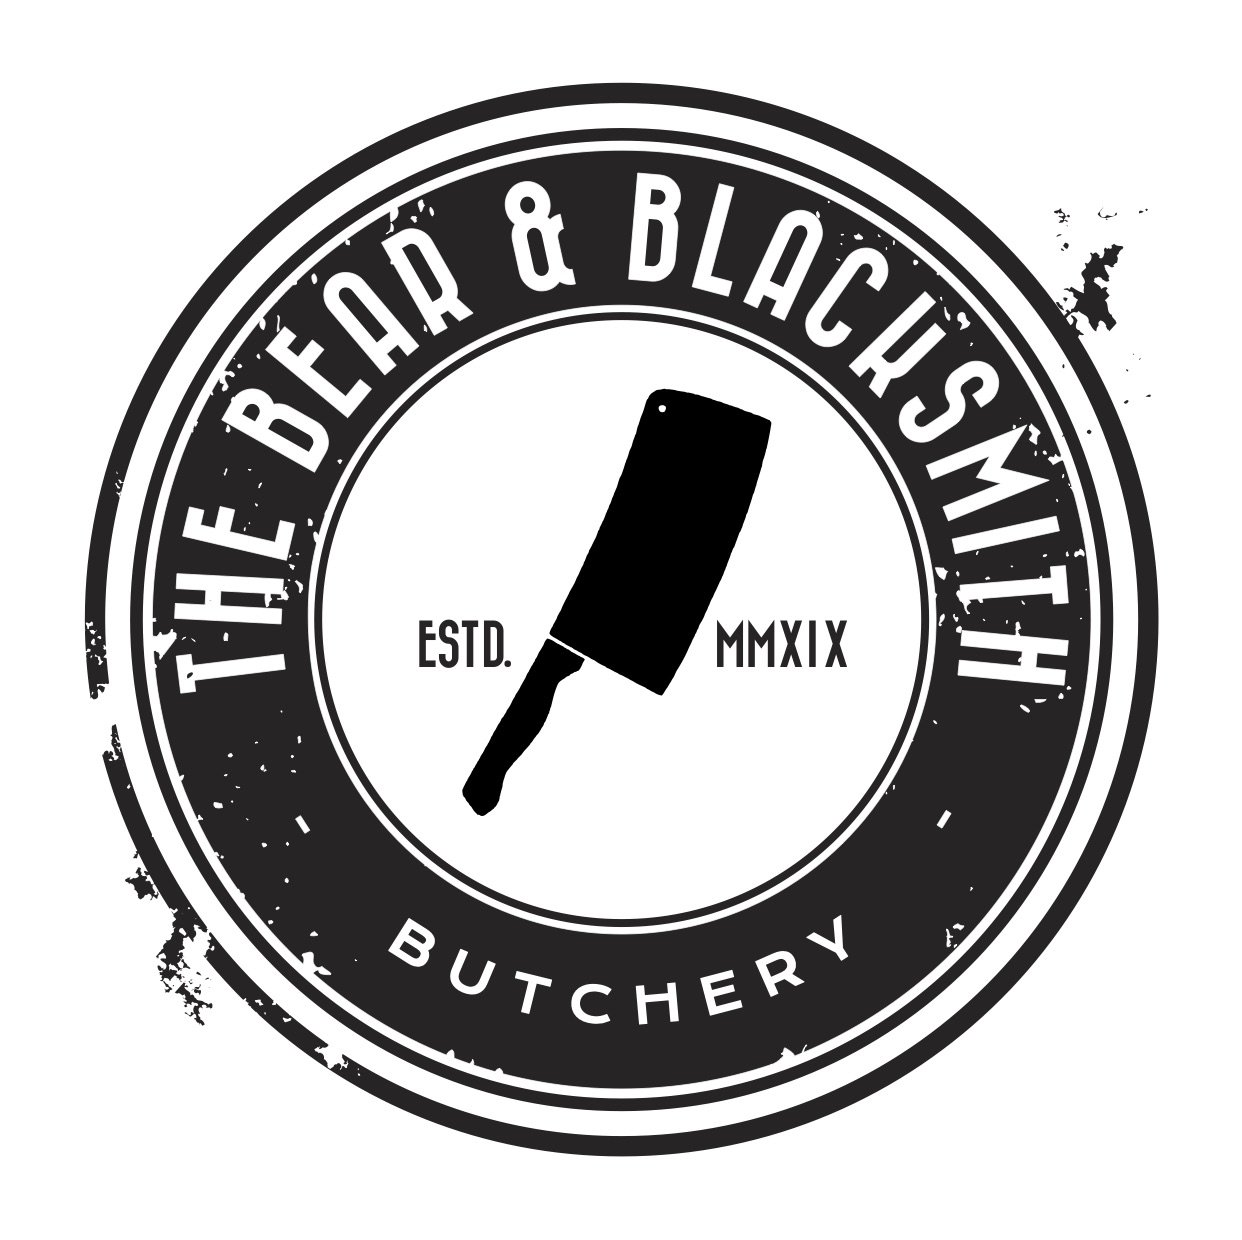 The Bear & Blacksmith Butchery